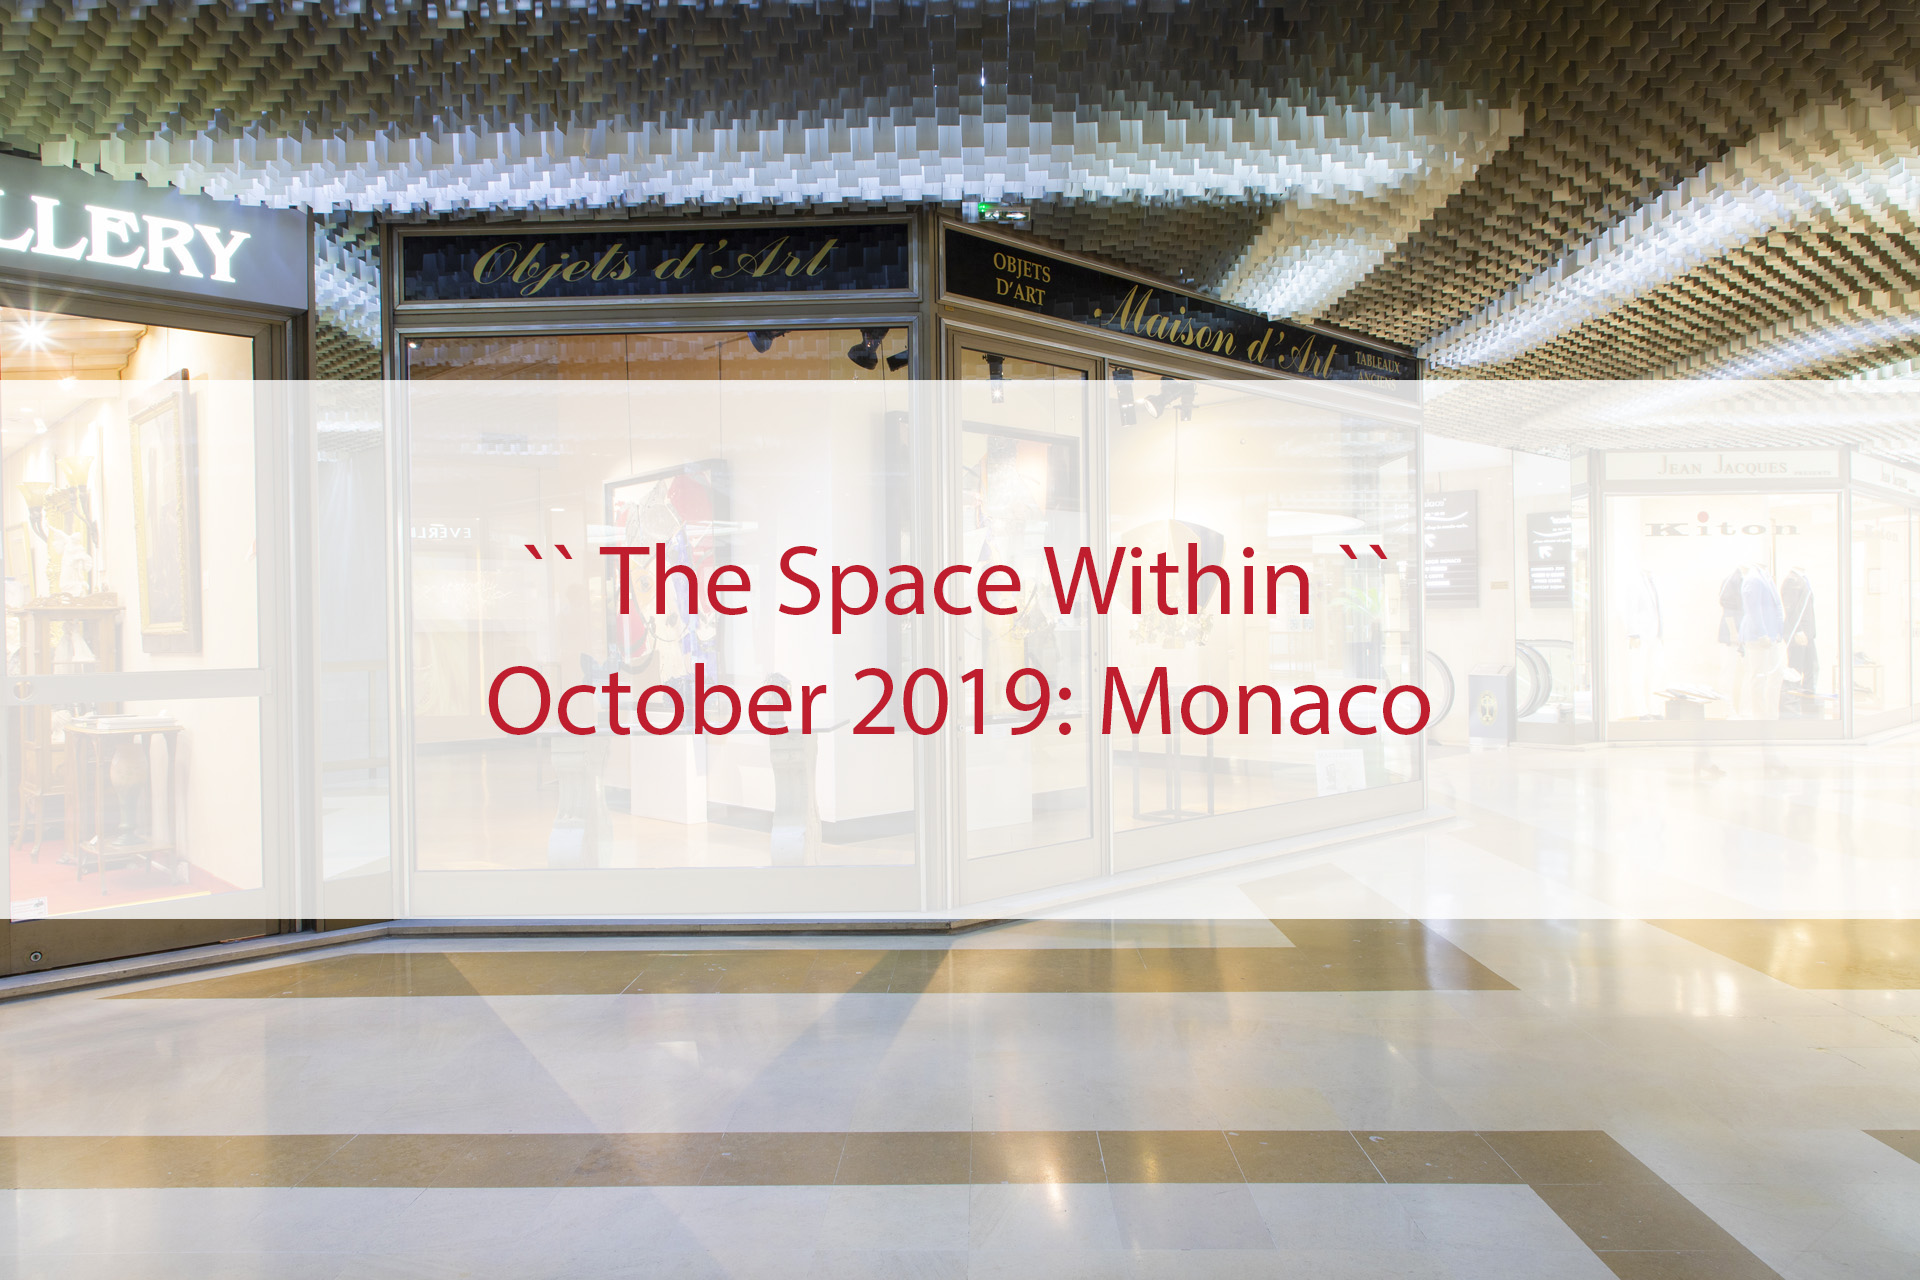 October 2019: 'The Space Within'